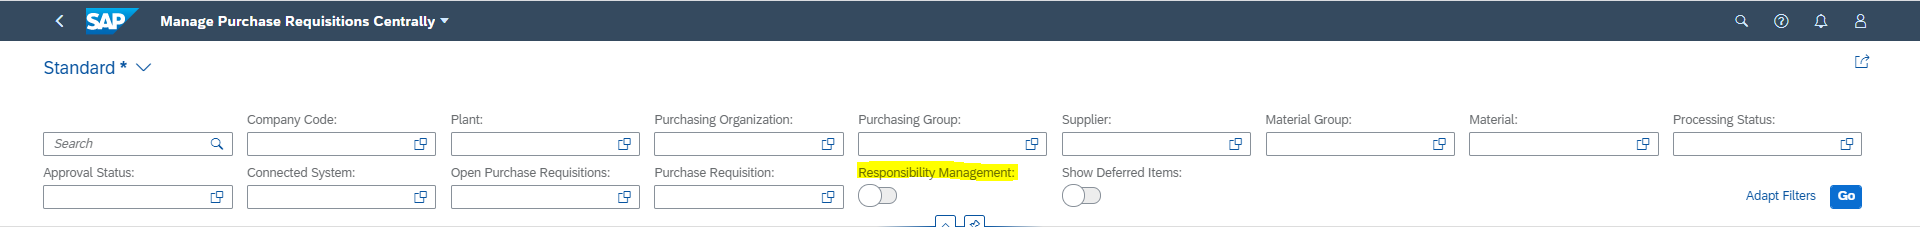 This%20is%20the%20Responsibility%20Management%20filter%20toggle%20in%20Manage%20Purchase%20Requisitions%20Centrally.%20The%20same%20has%20been%20introduced%20in%20the%20Manage%20Purchase%20Orders%20Centrally%20application%20as%20well.